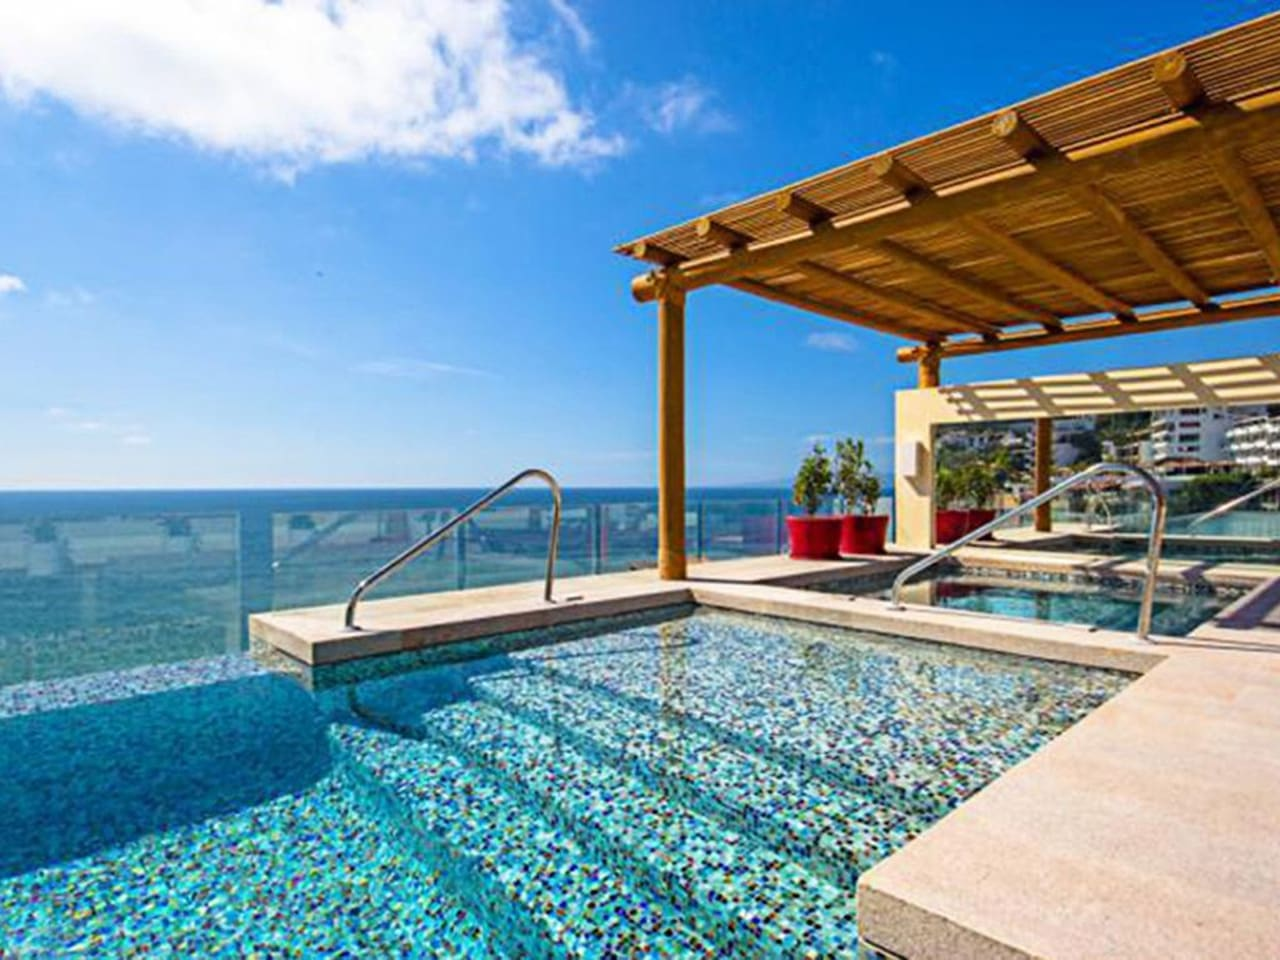 Rooftop pool, hot tub, bar, grill, gym w seaview and 360 degree panoramas overlooking the beach